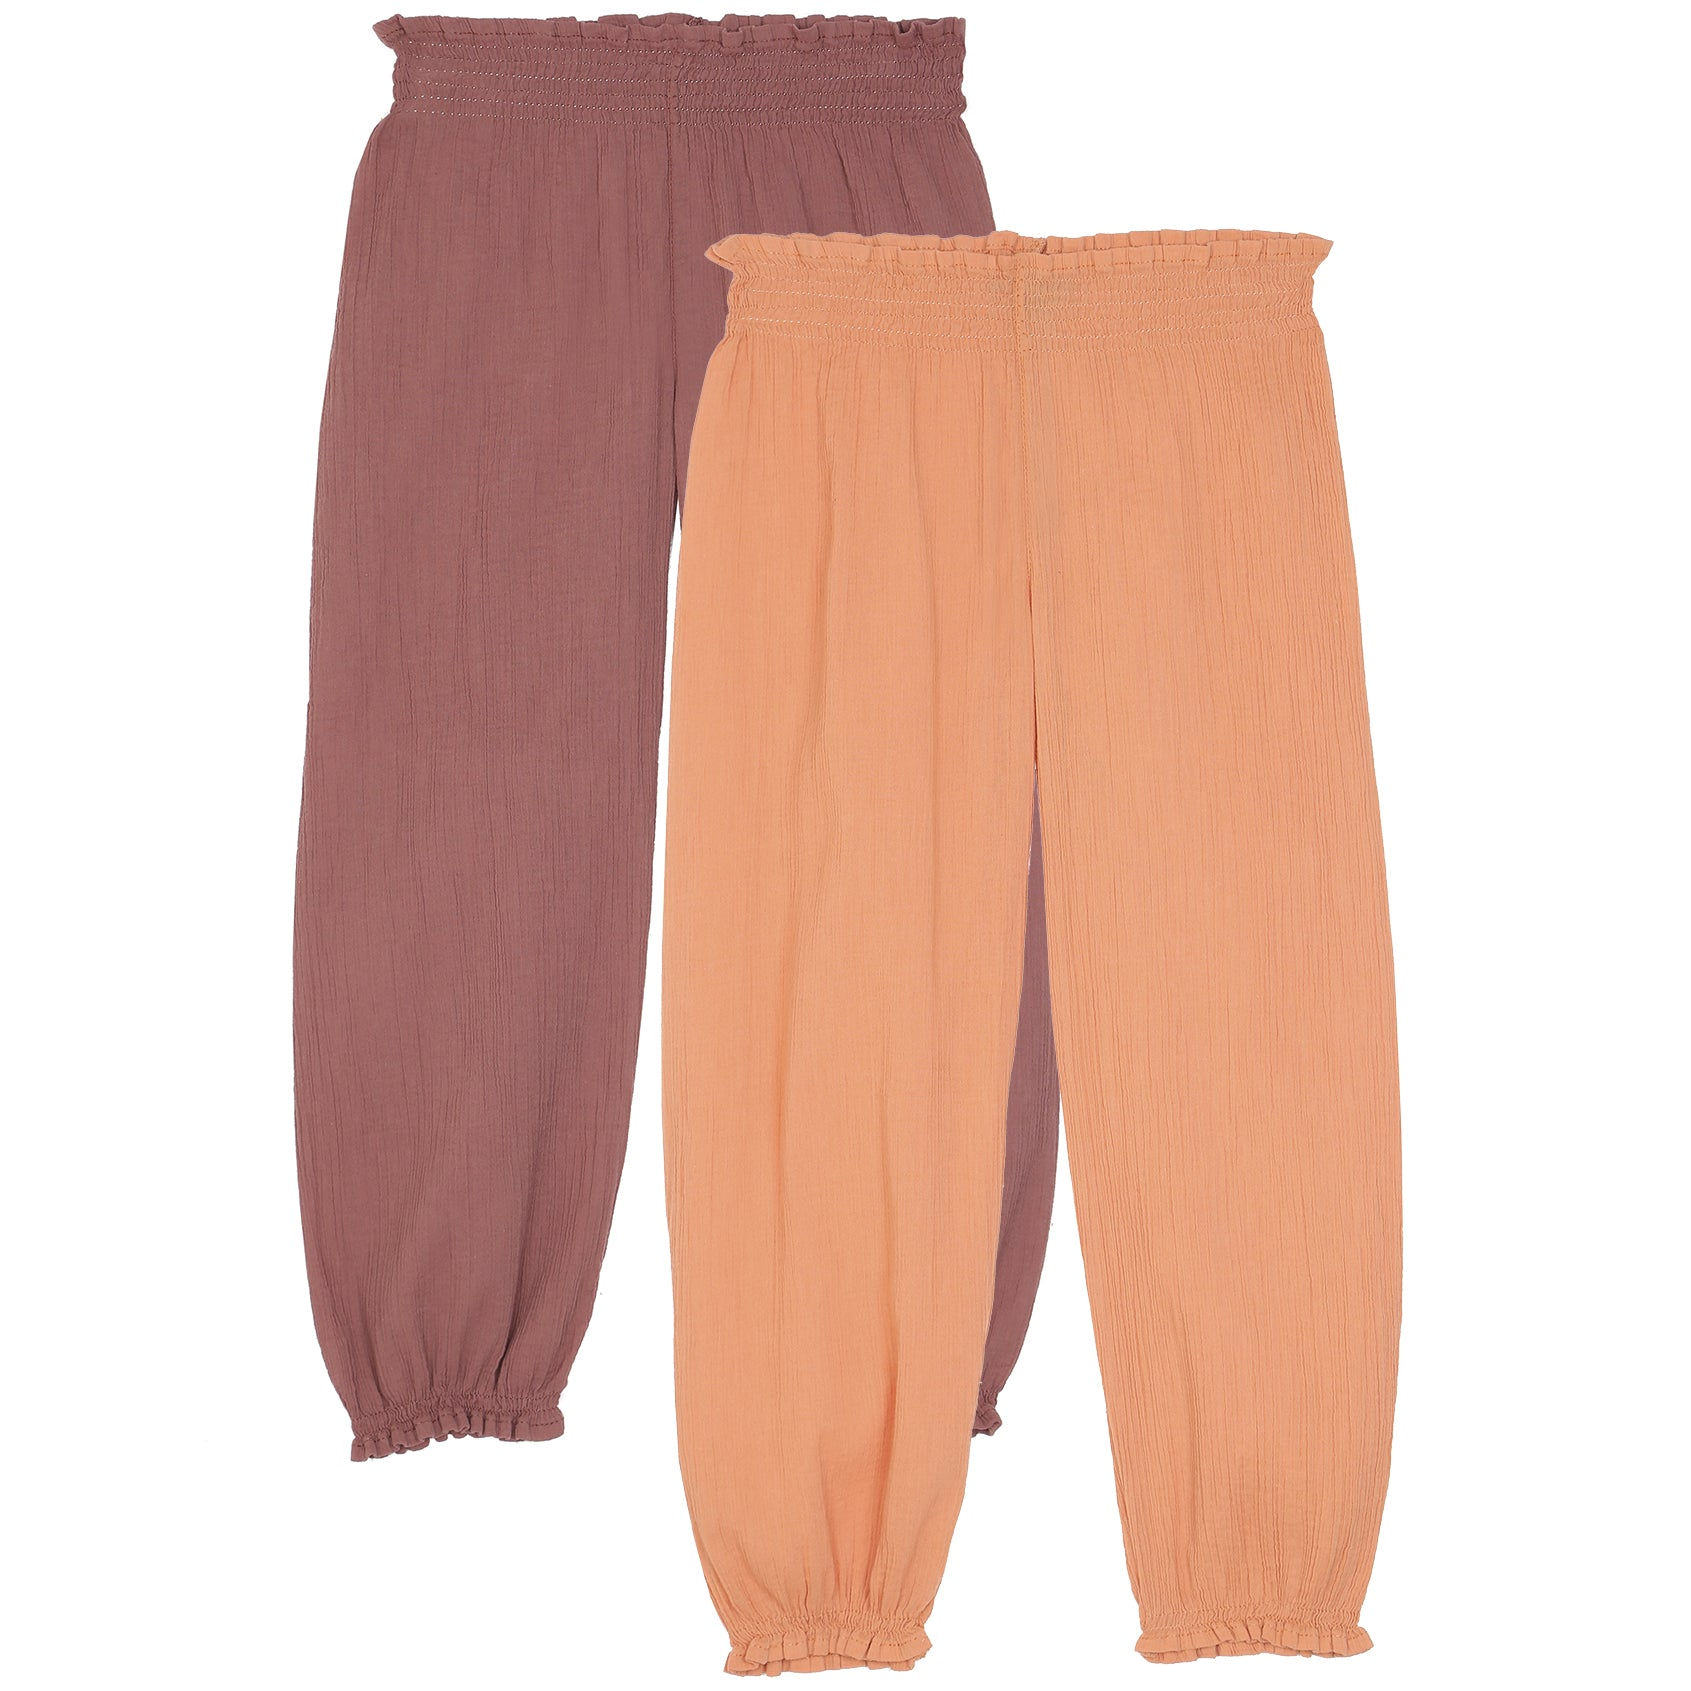 yoya, kids, girls, emile et ida, lightweight, creed, summer, casual, lounge, harem, pants,